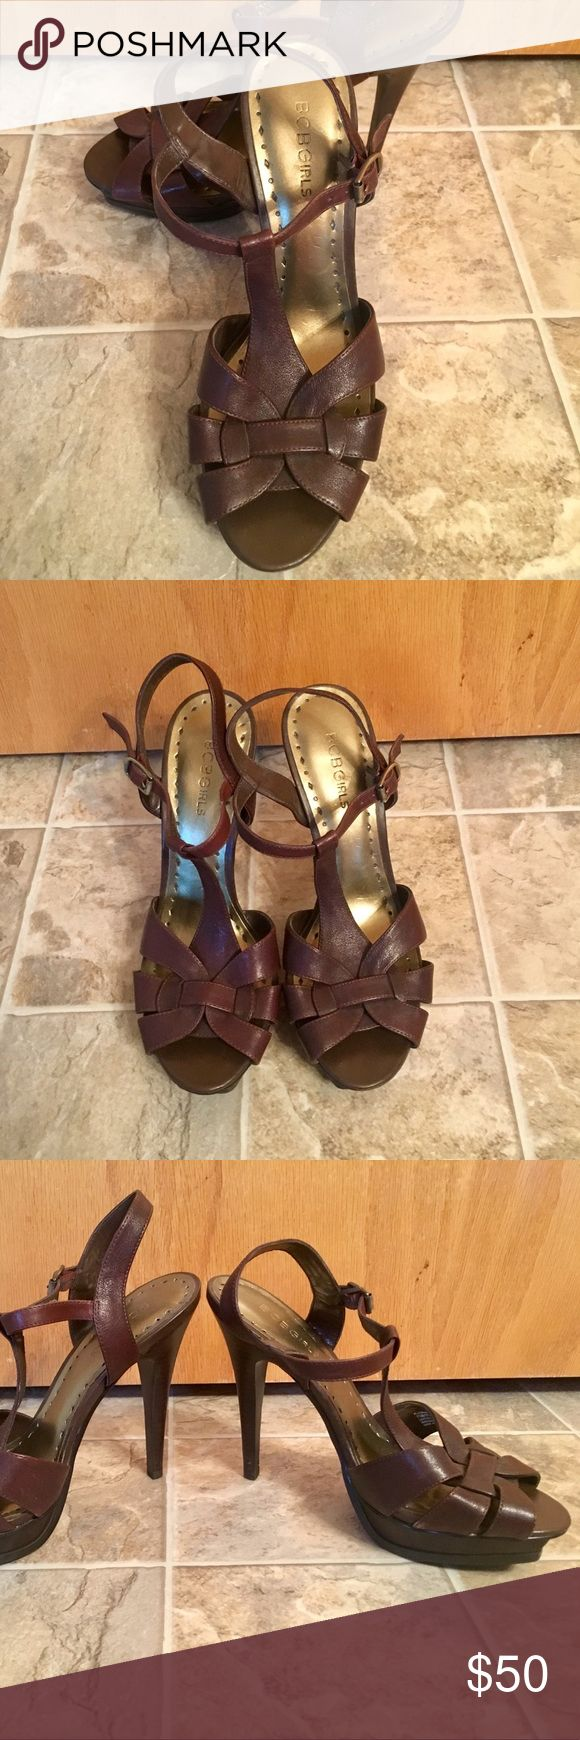 BCBGirls Brown Strappy High Heels These espresso brown strappy high heels by BCBGirls are a classic style that have only been worn a couple of times. BCBGirls Shoes Heels